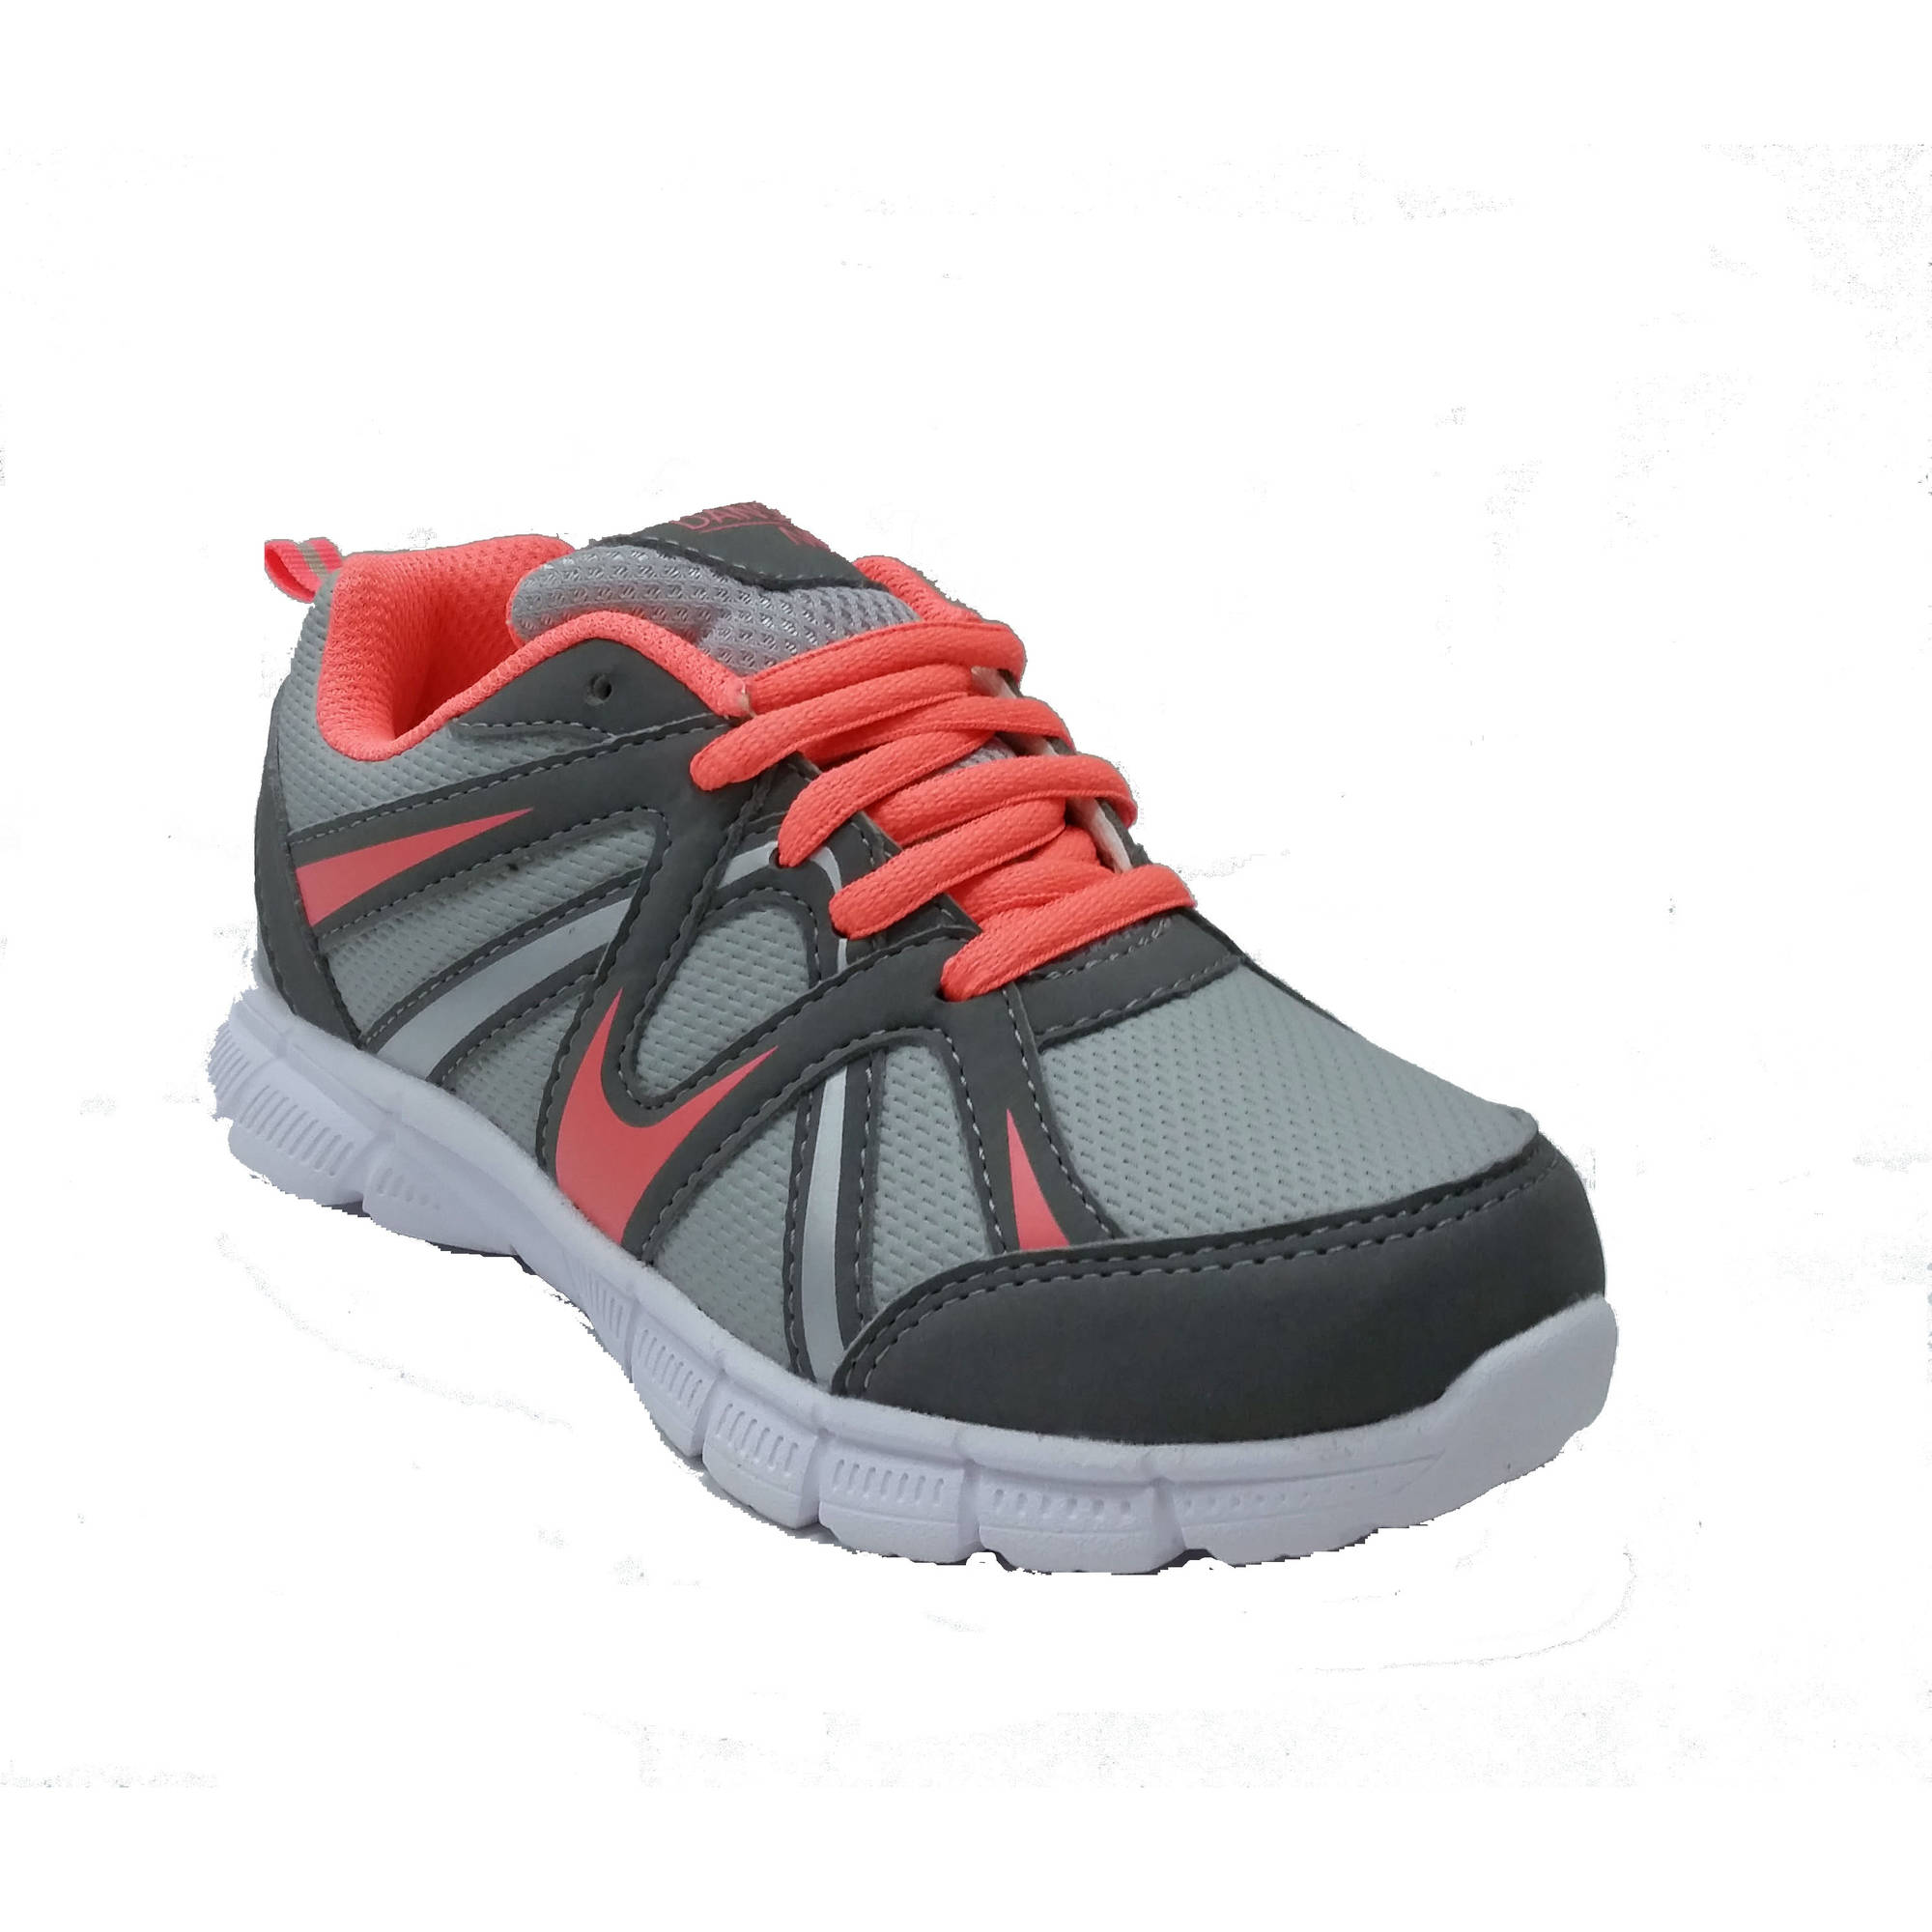 Danskin Now Girls' Lightweight Athletic Shoe